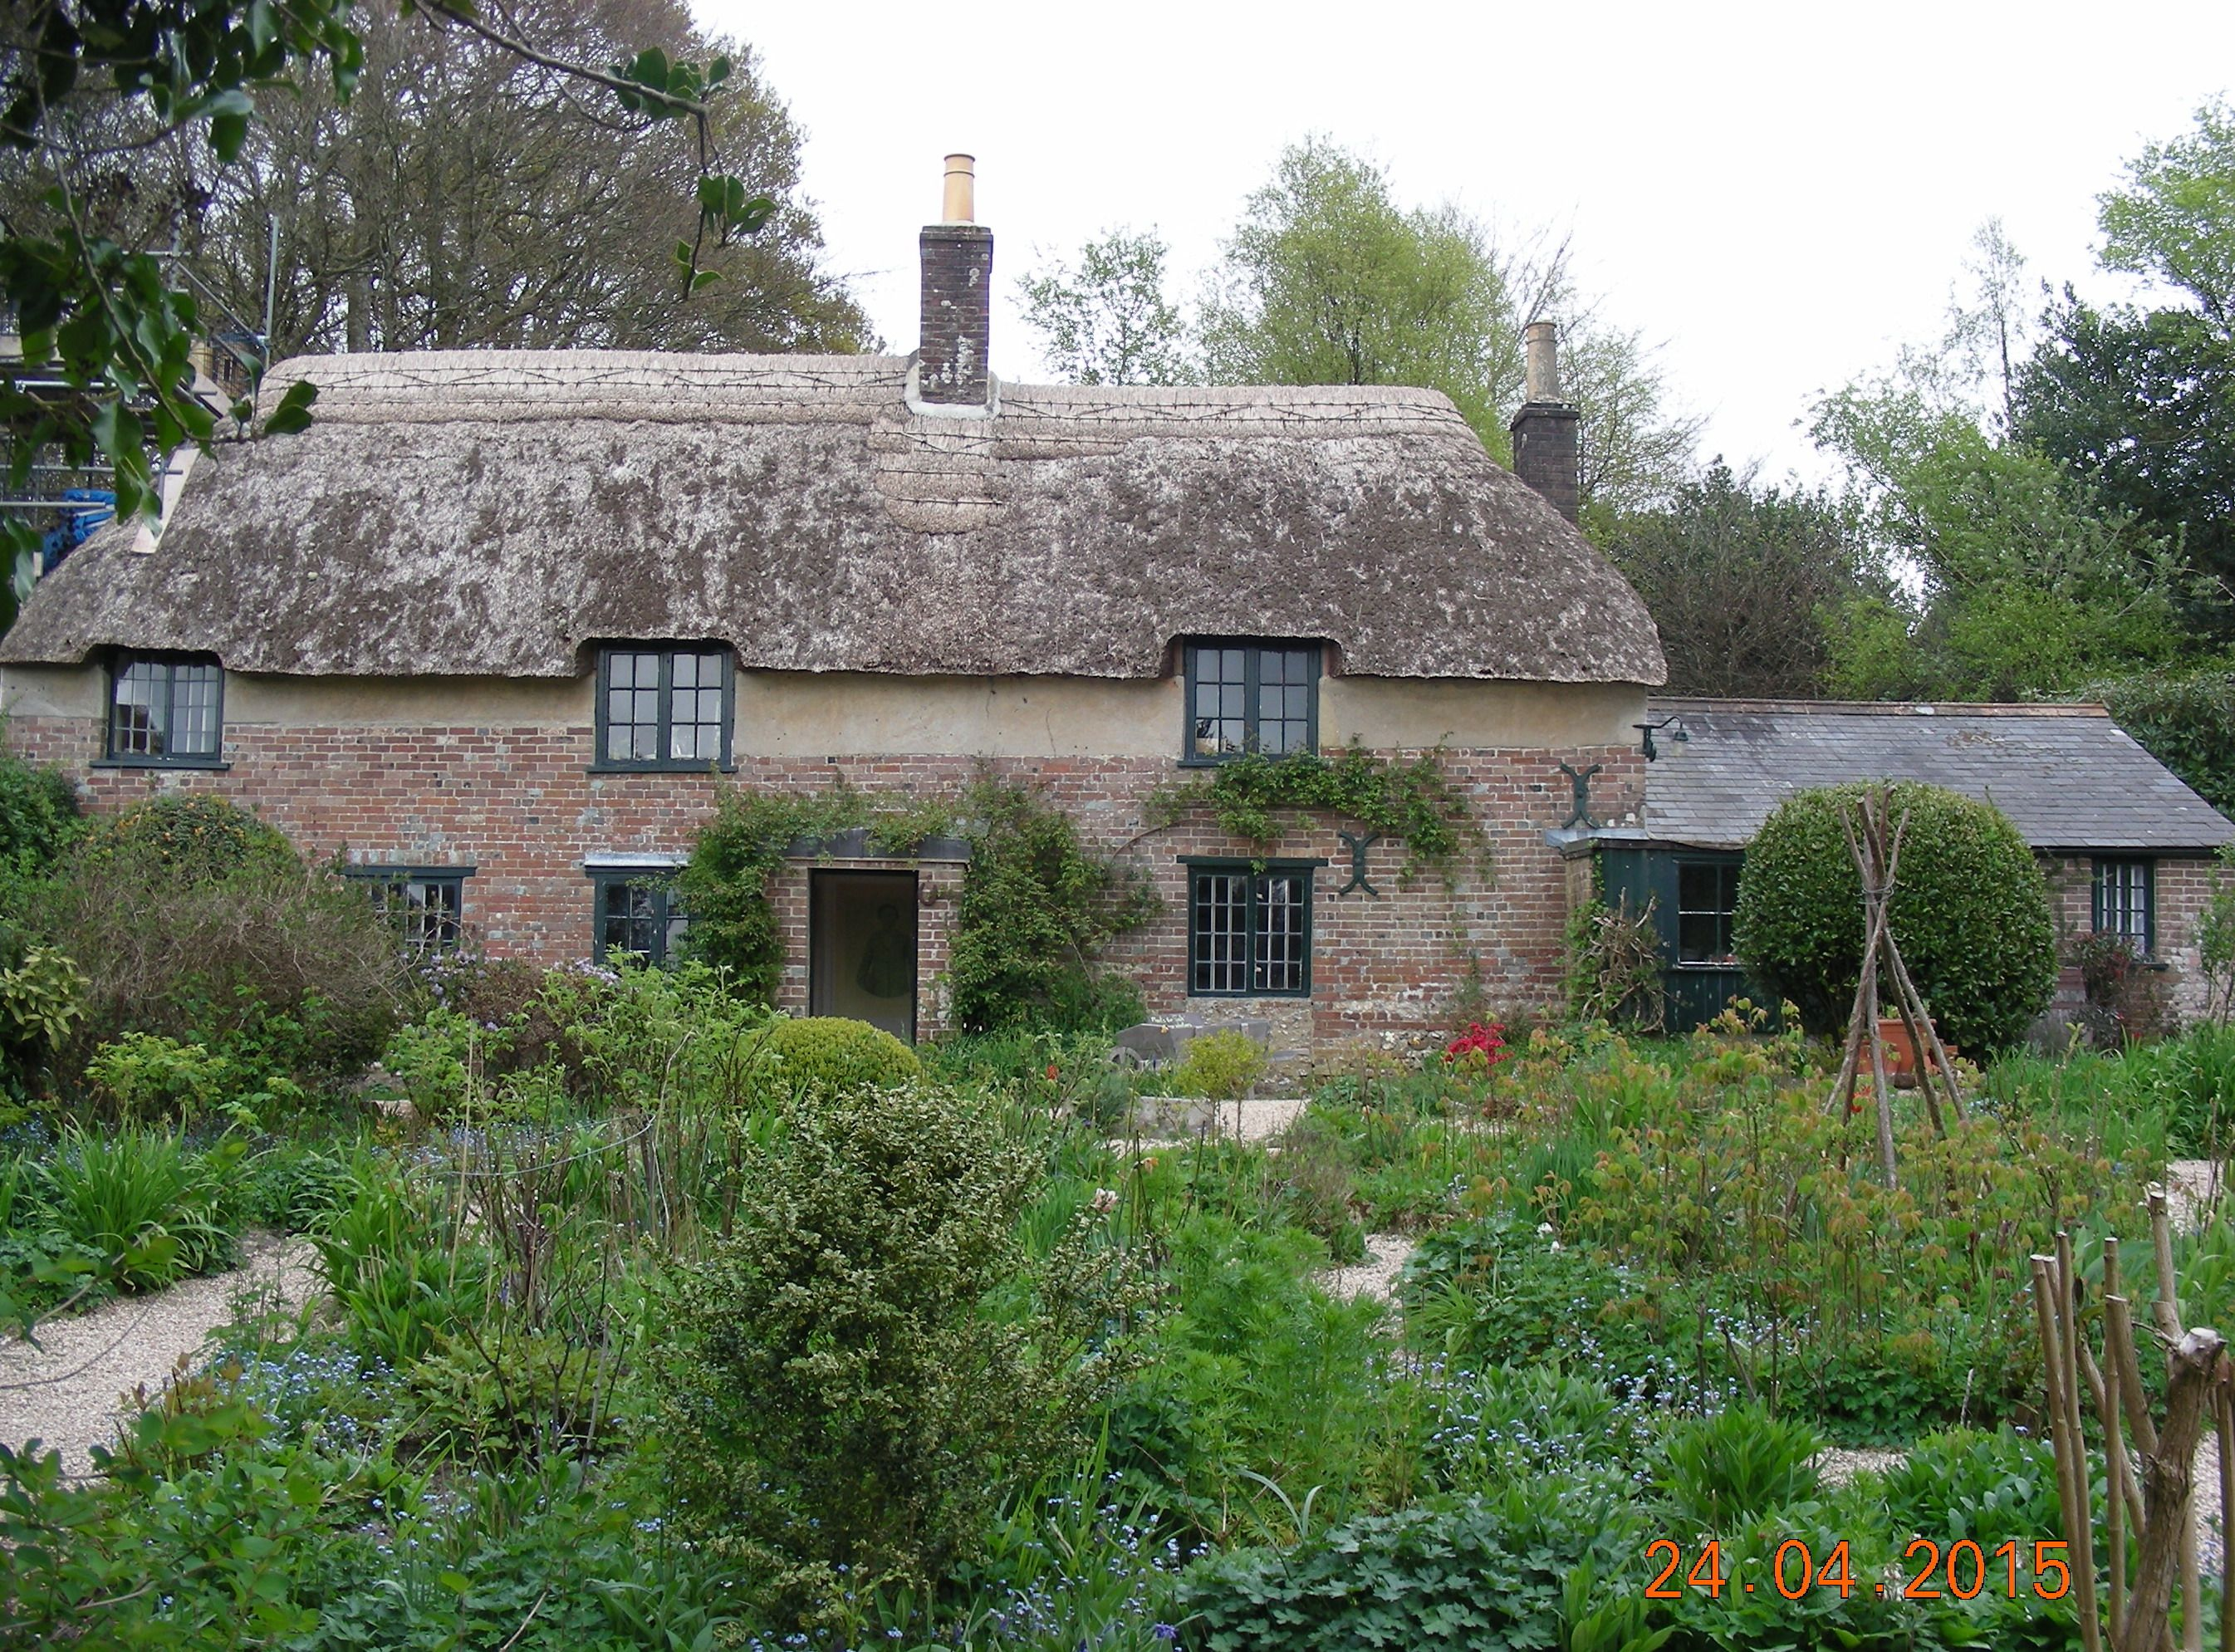 thomas hardy s birthplace at higher bockhampton dorset thomas hardy s birthplace 1840 at higher bockhampton dorset